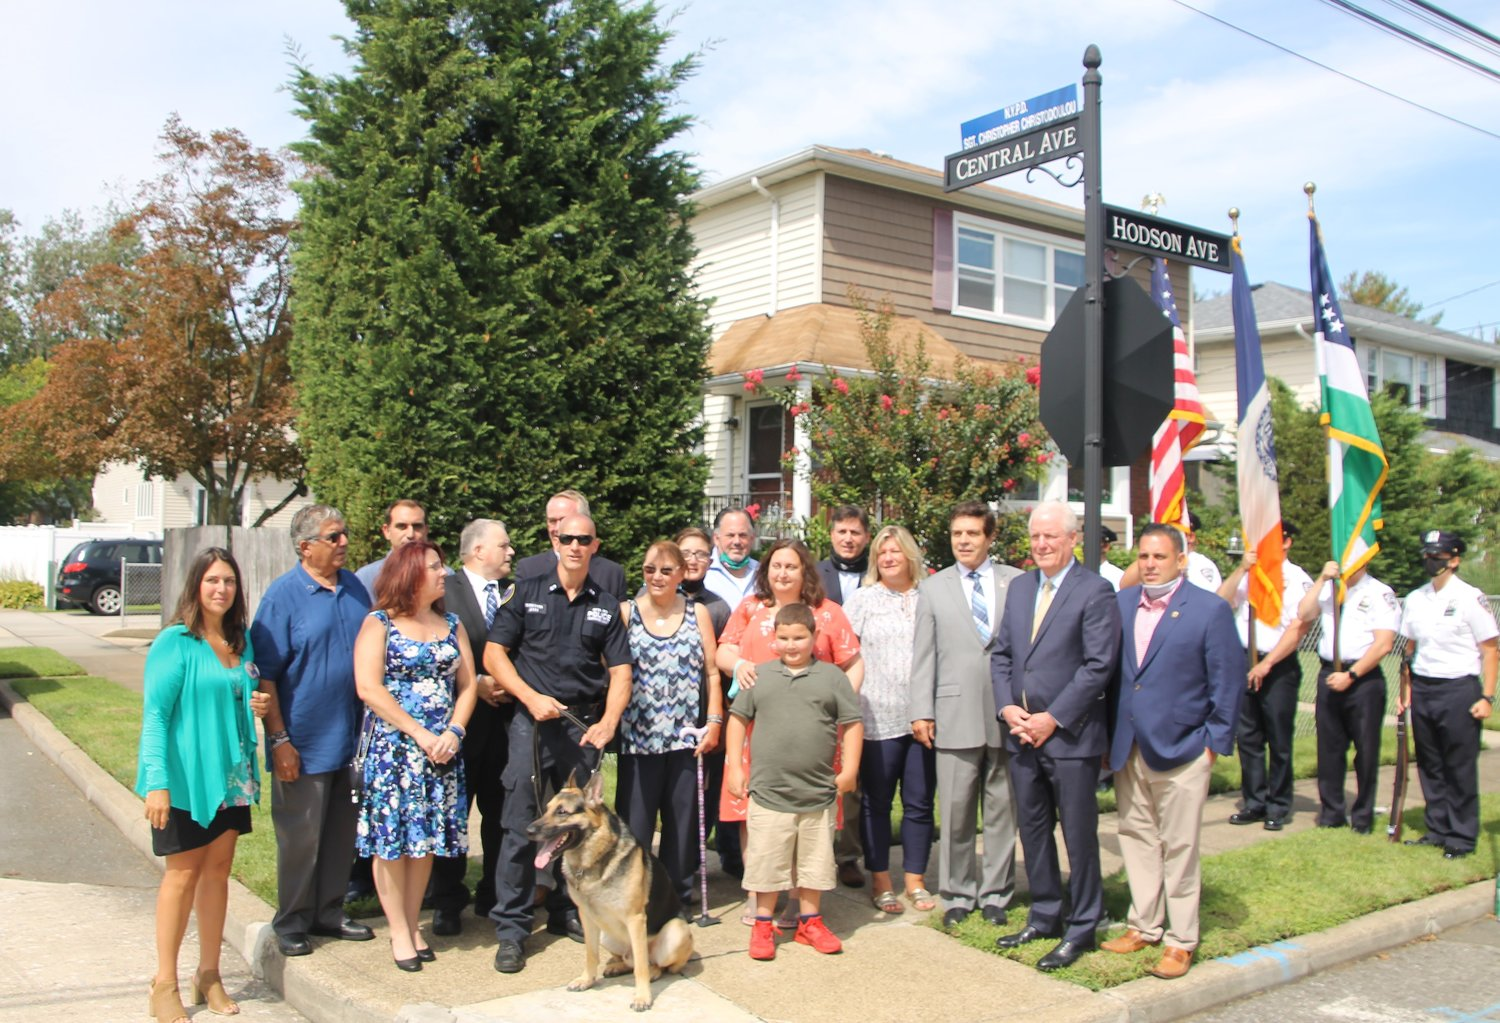 Family, friends and uniformed police officers gathered at the corner of Hodson and Central avenues as a new street sign honoring Christodoulou was unveiled.